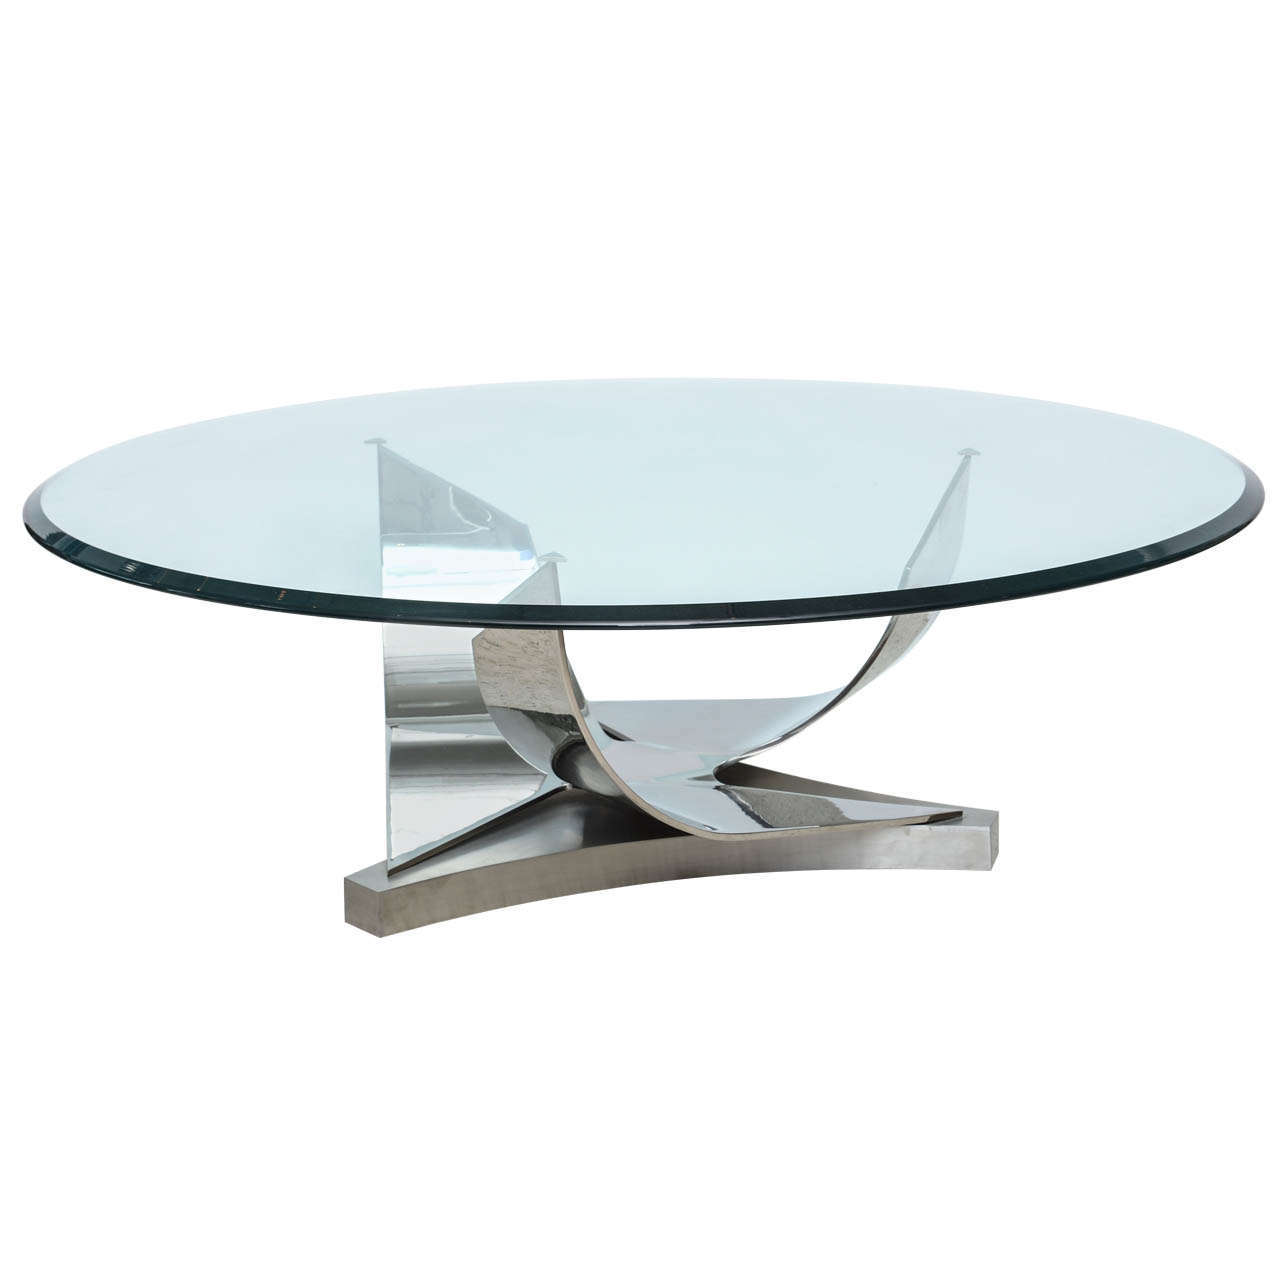 Ron Seff Polished Chrome And Stainless Steel Glass Top Low Table Glass Top Polished Chrome Glass Coffee Tables Living Room [ 1280 x 1280 Pixel ]